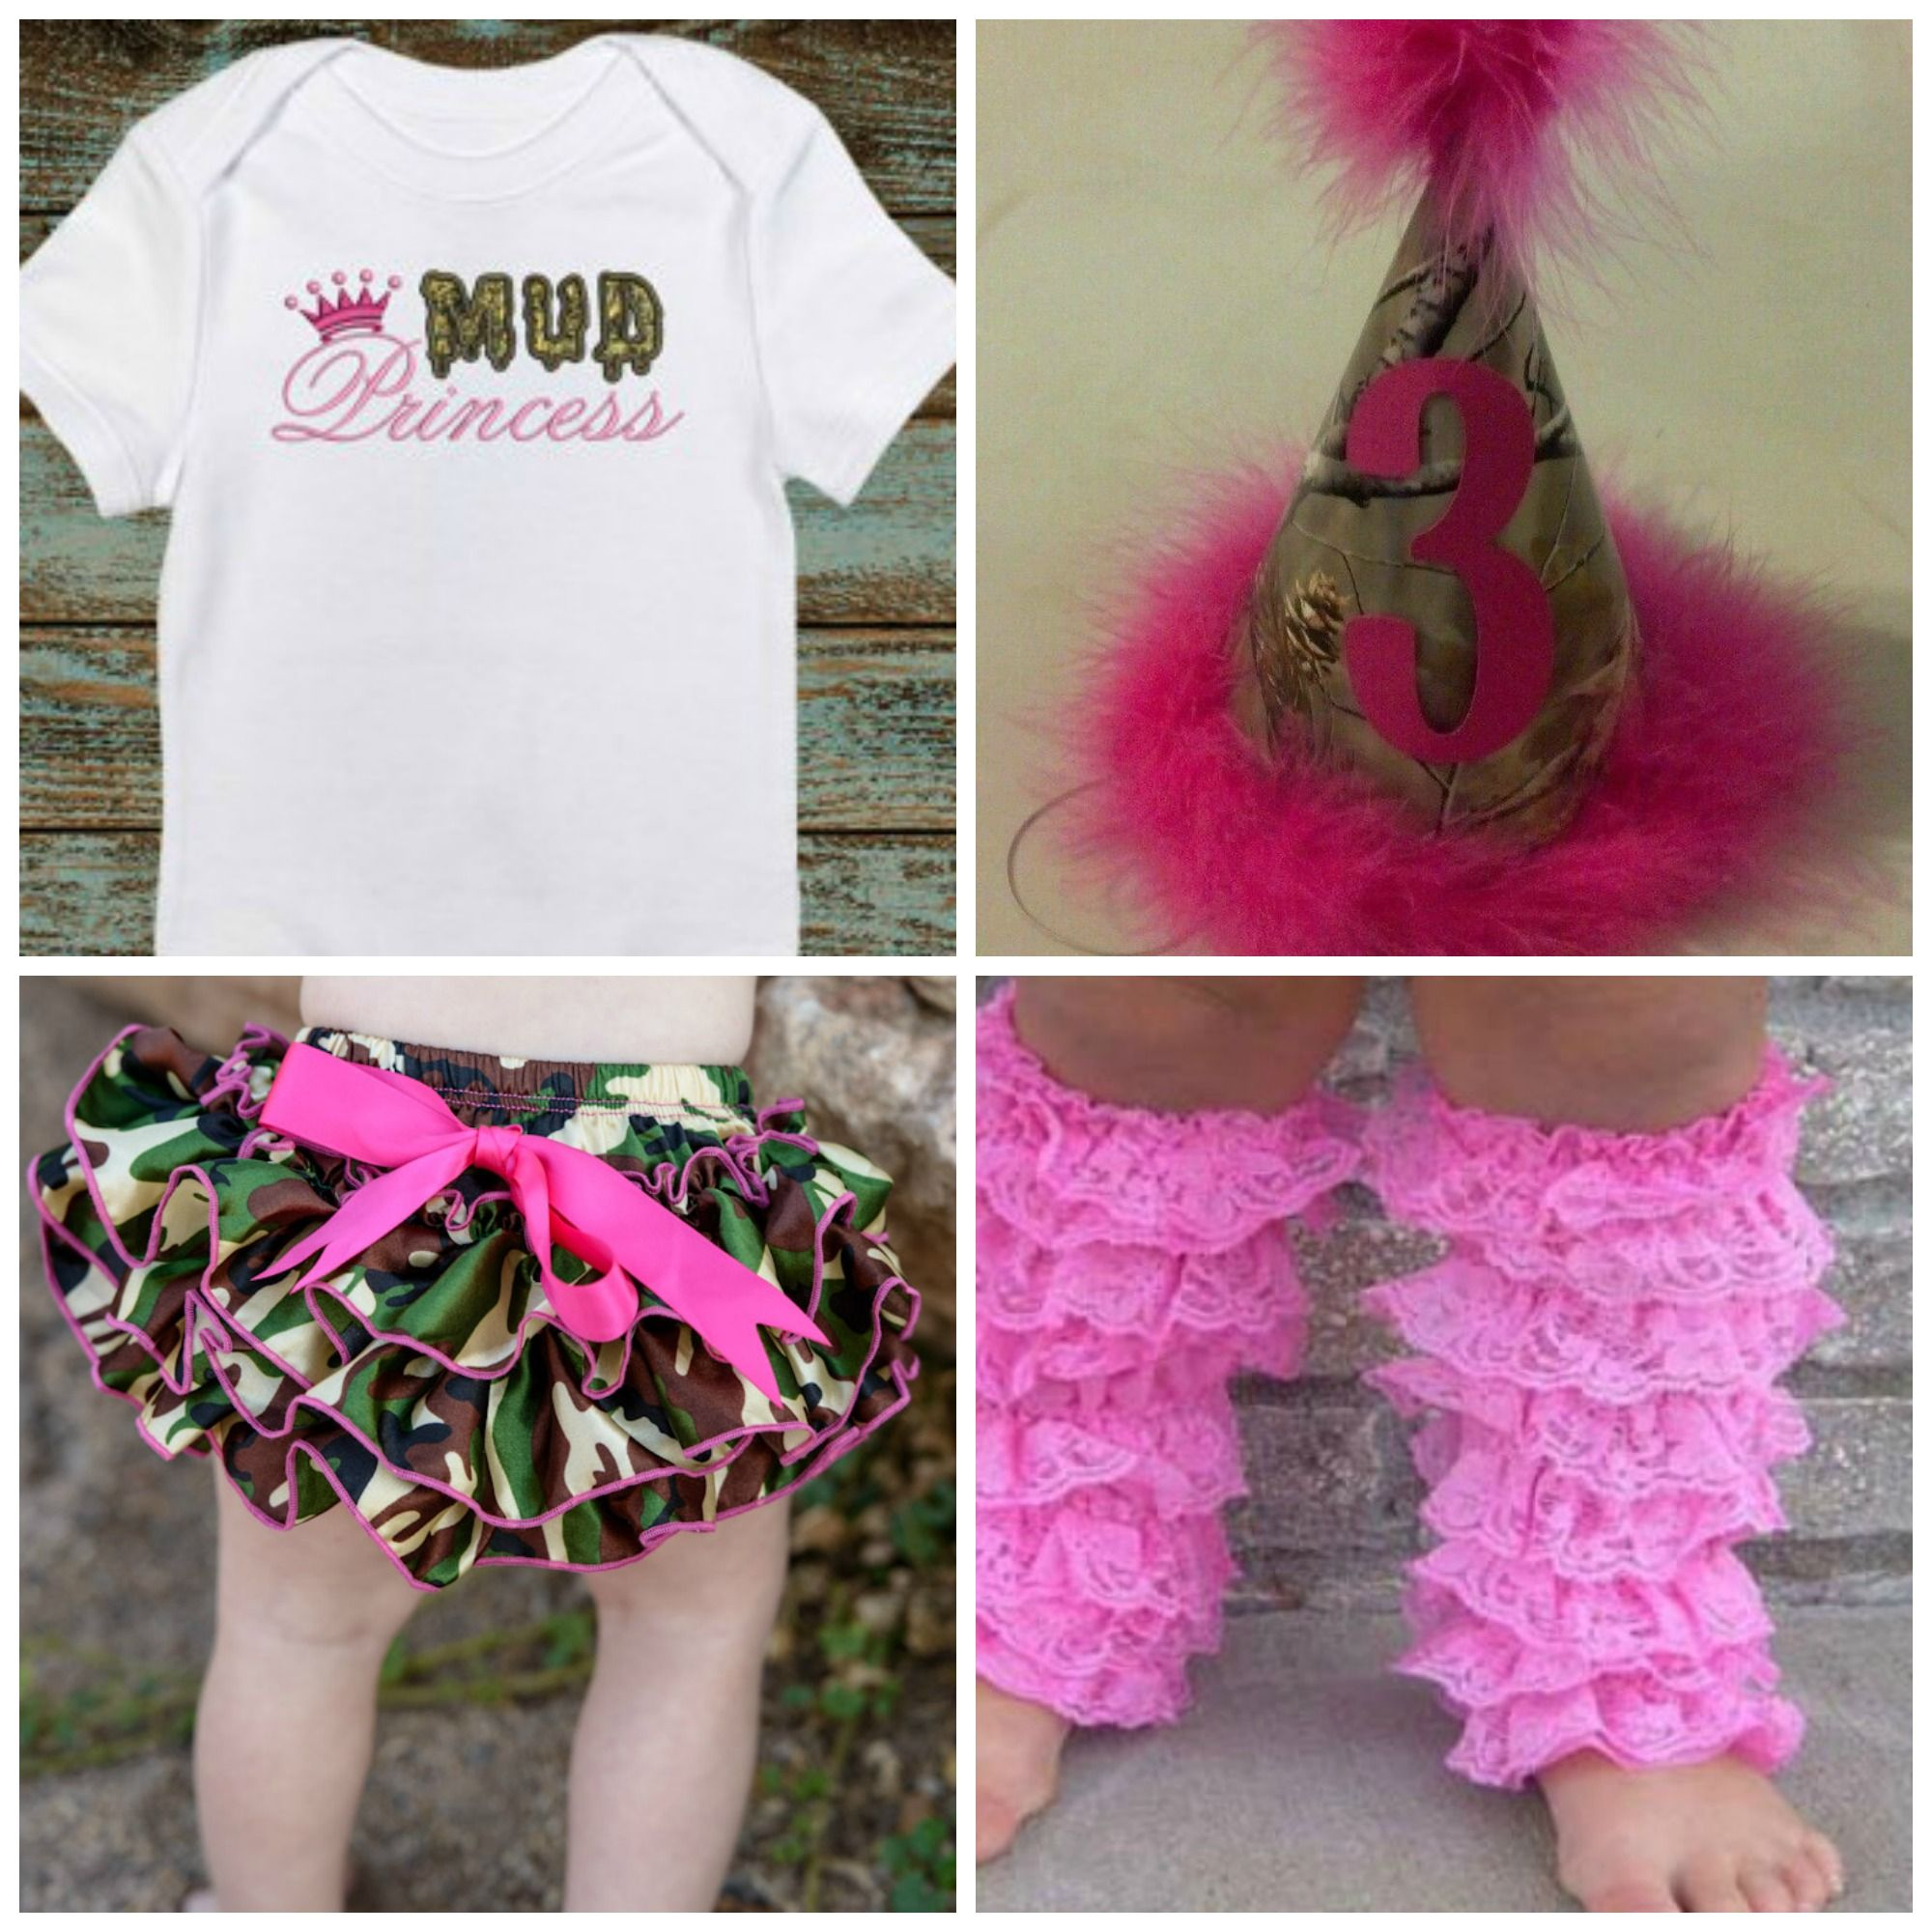 https://www.facebook.com/rufflesandbowtiesbowtique/photos/pcb.350492665137711/350492115137766/?type=1&theater Does your little one have a Birthday coming up...How about a Camo party or a Camo Smash Cake Session??? send us a PM if you would like to order any of the items or have a Special Birthday hat Made...